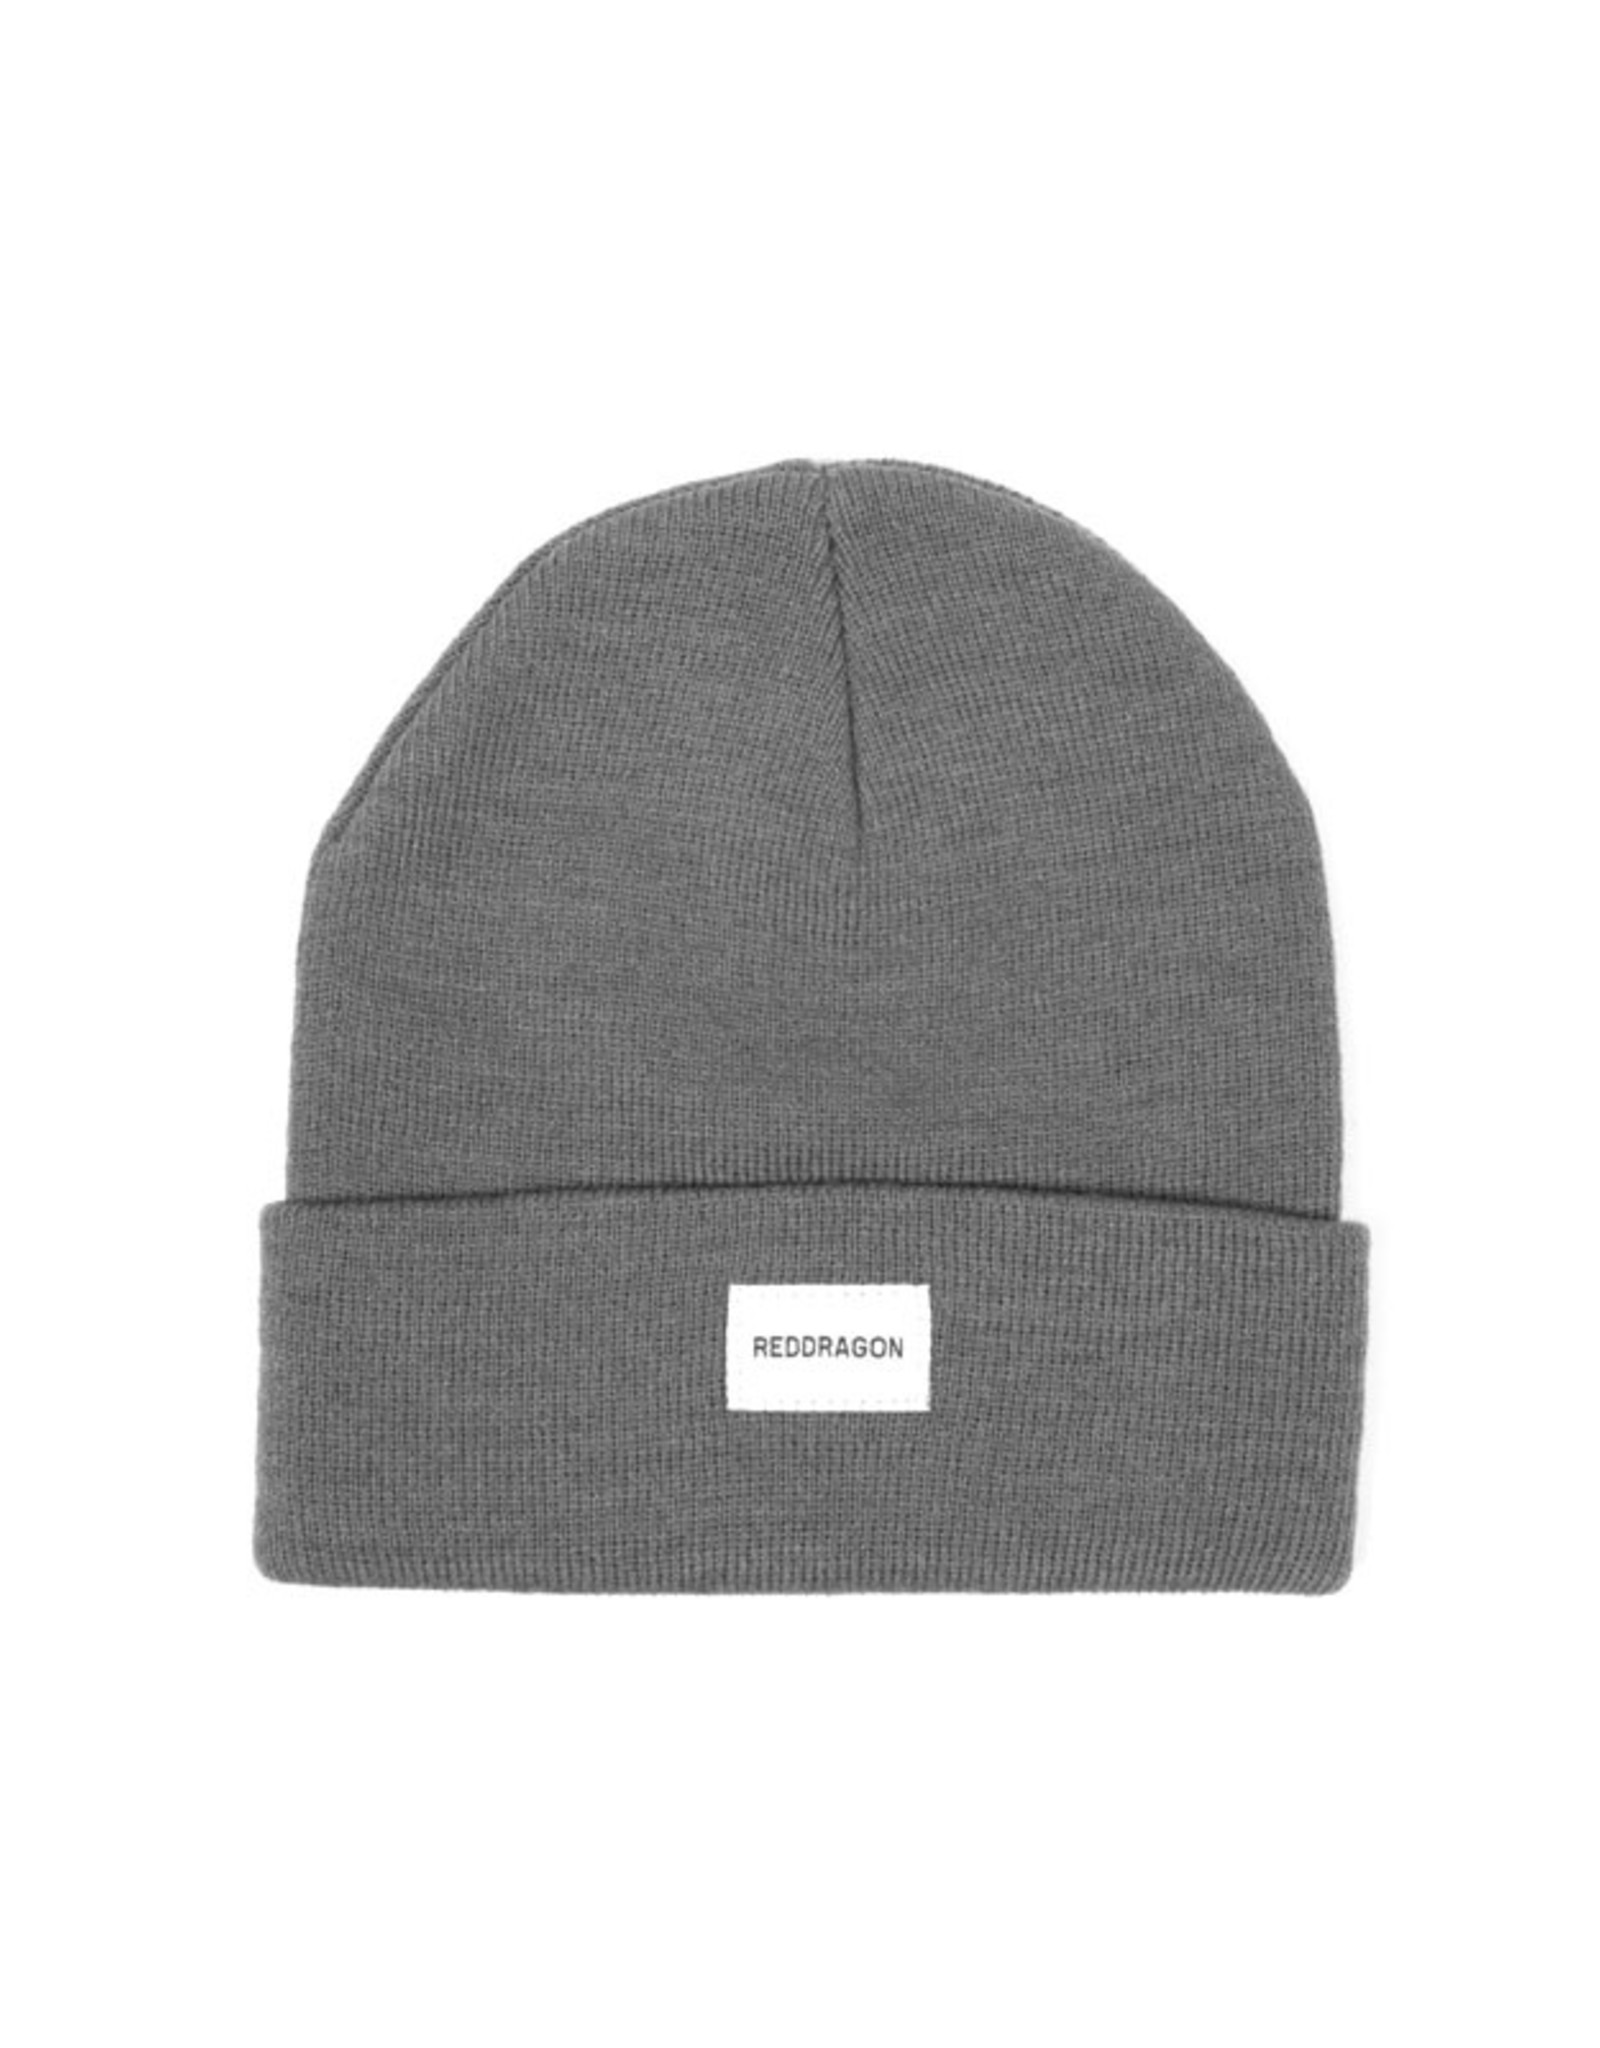 RDS RDS TOQUE FREEDOM ONE SIZE